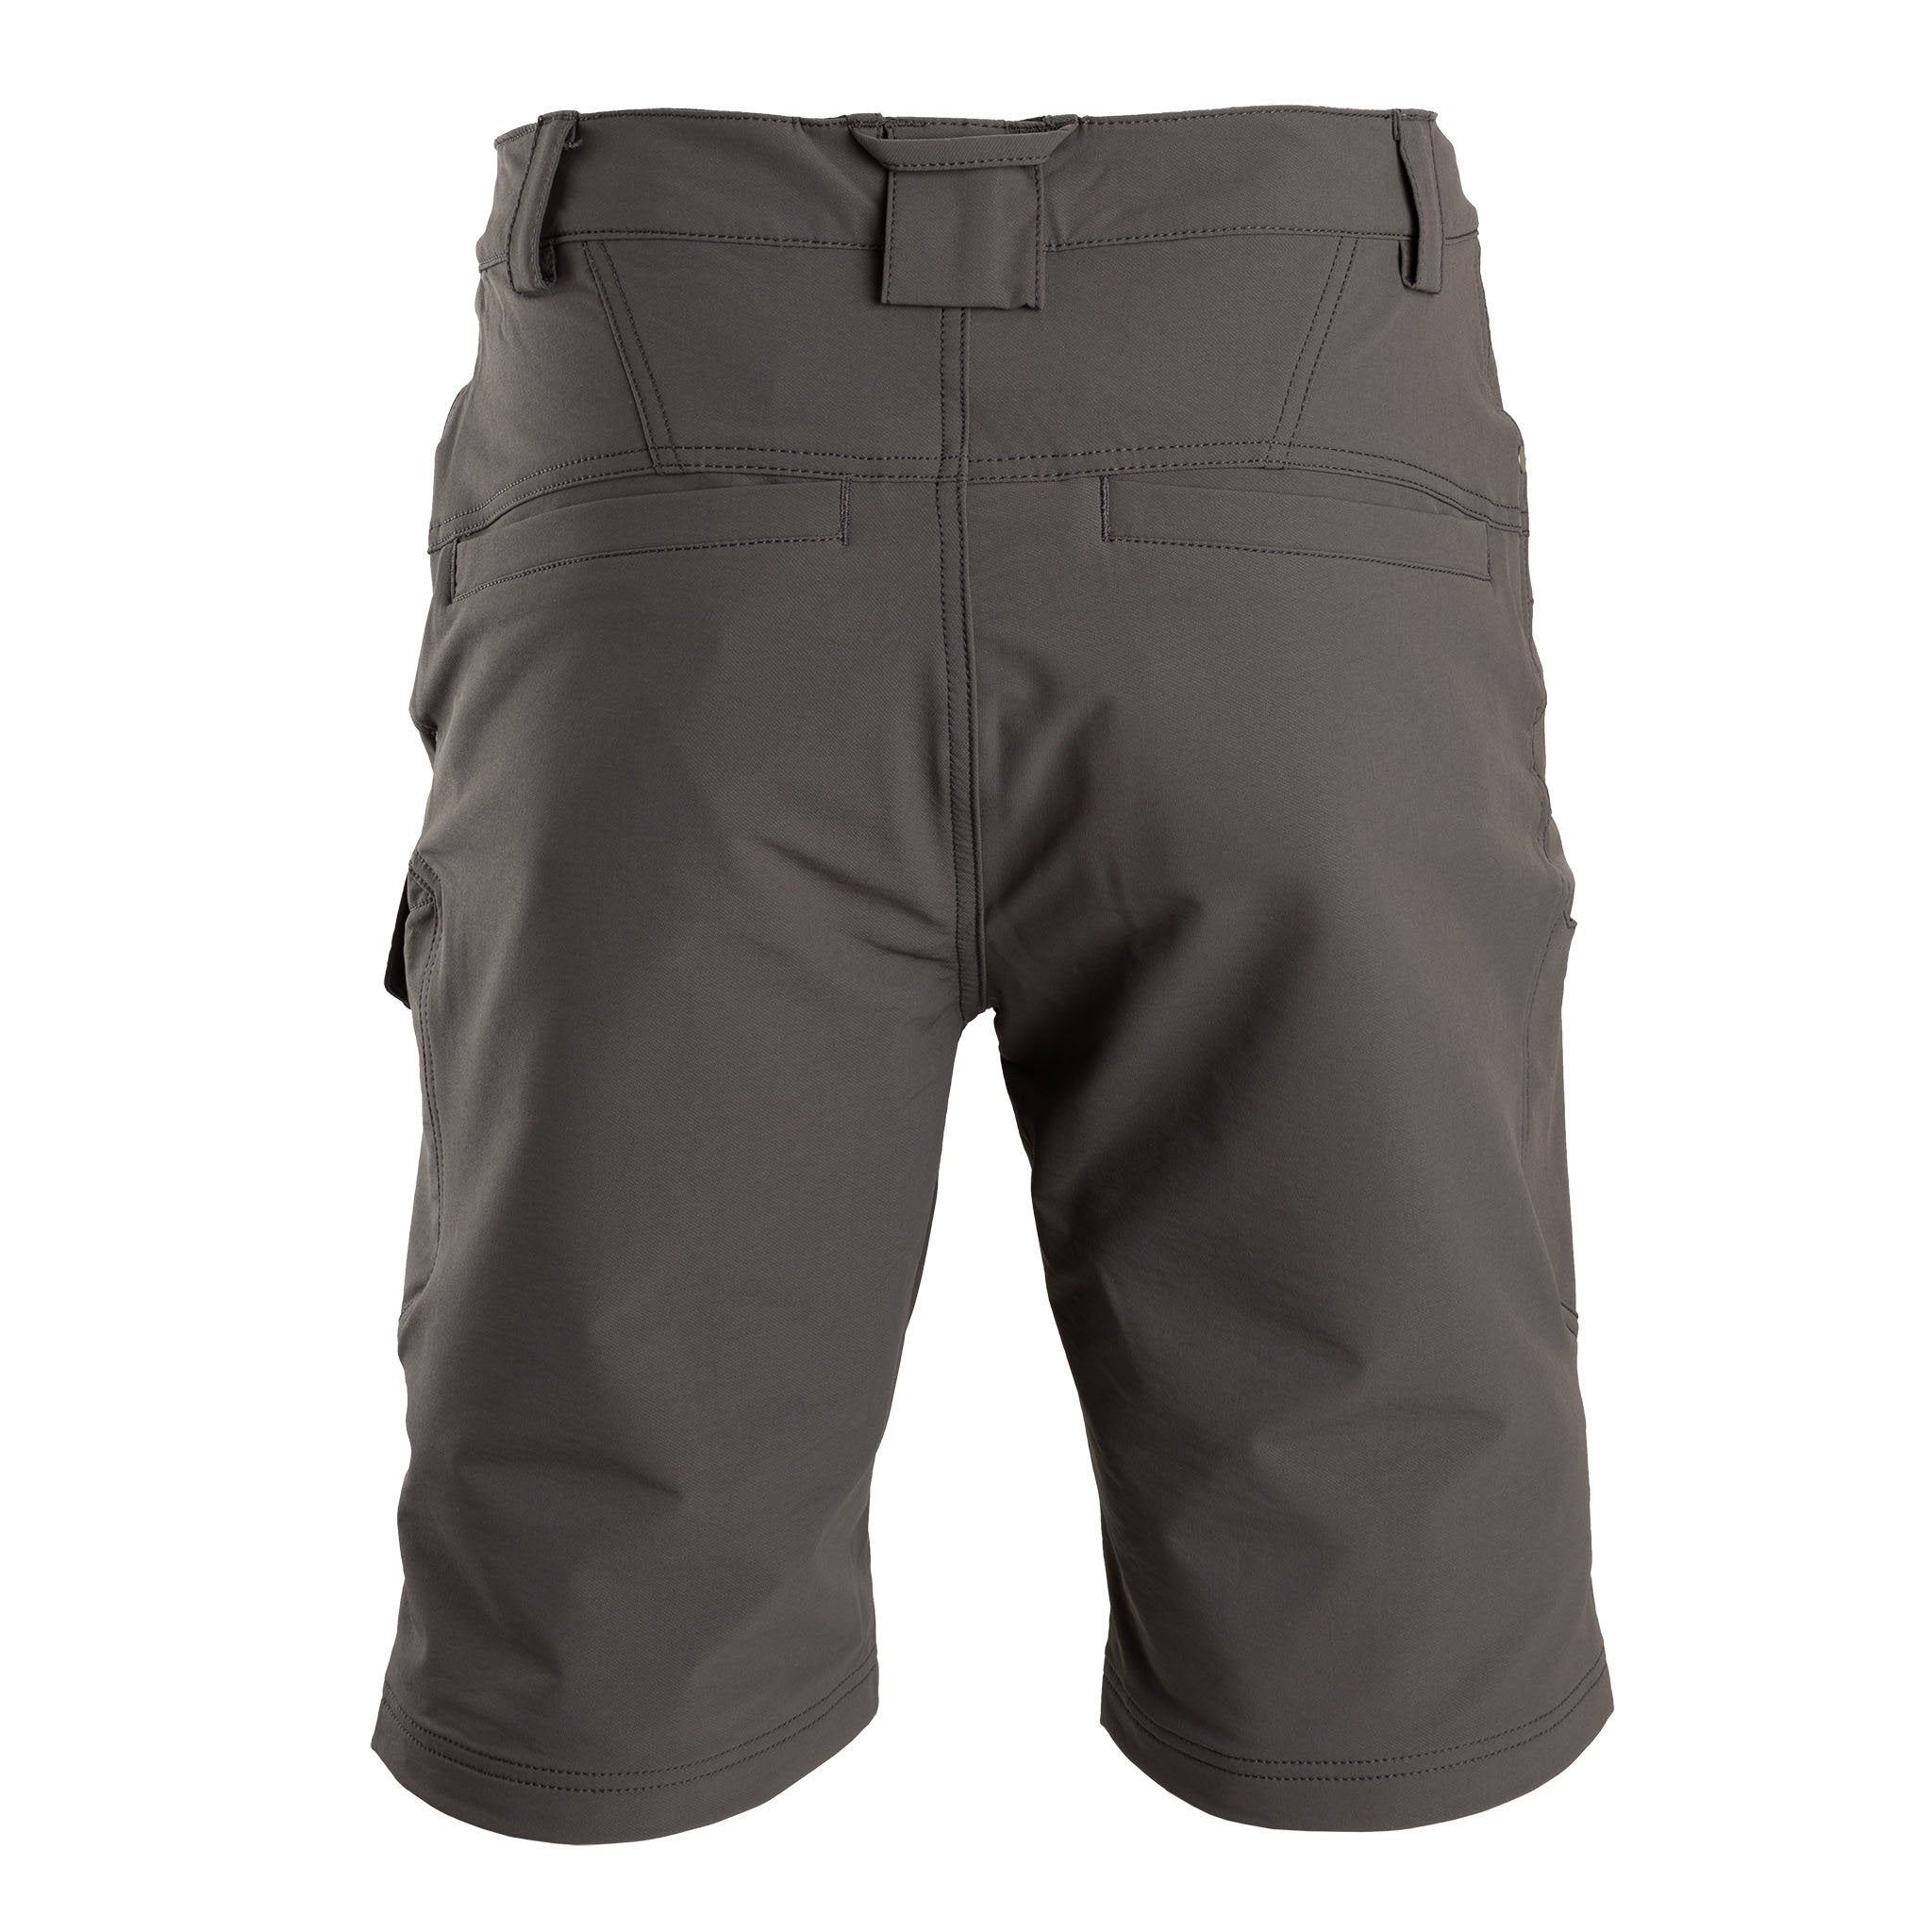 2020 - T2 WerkShort - Outlet